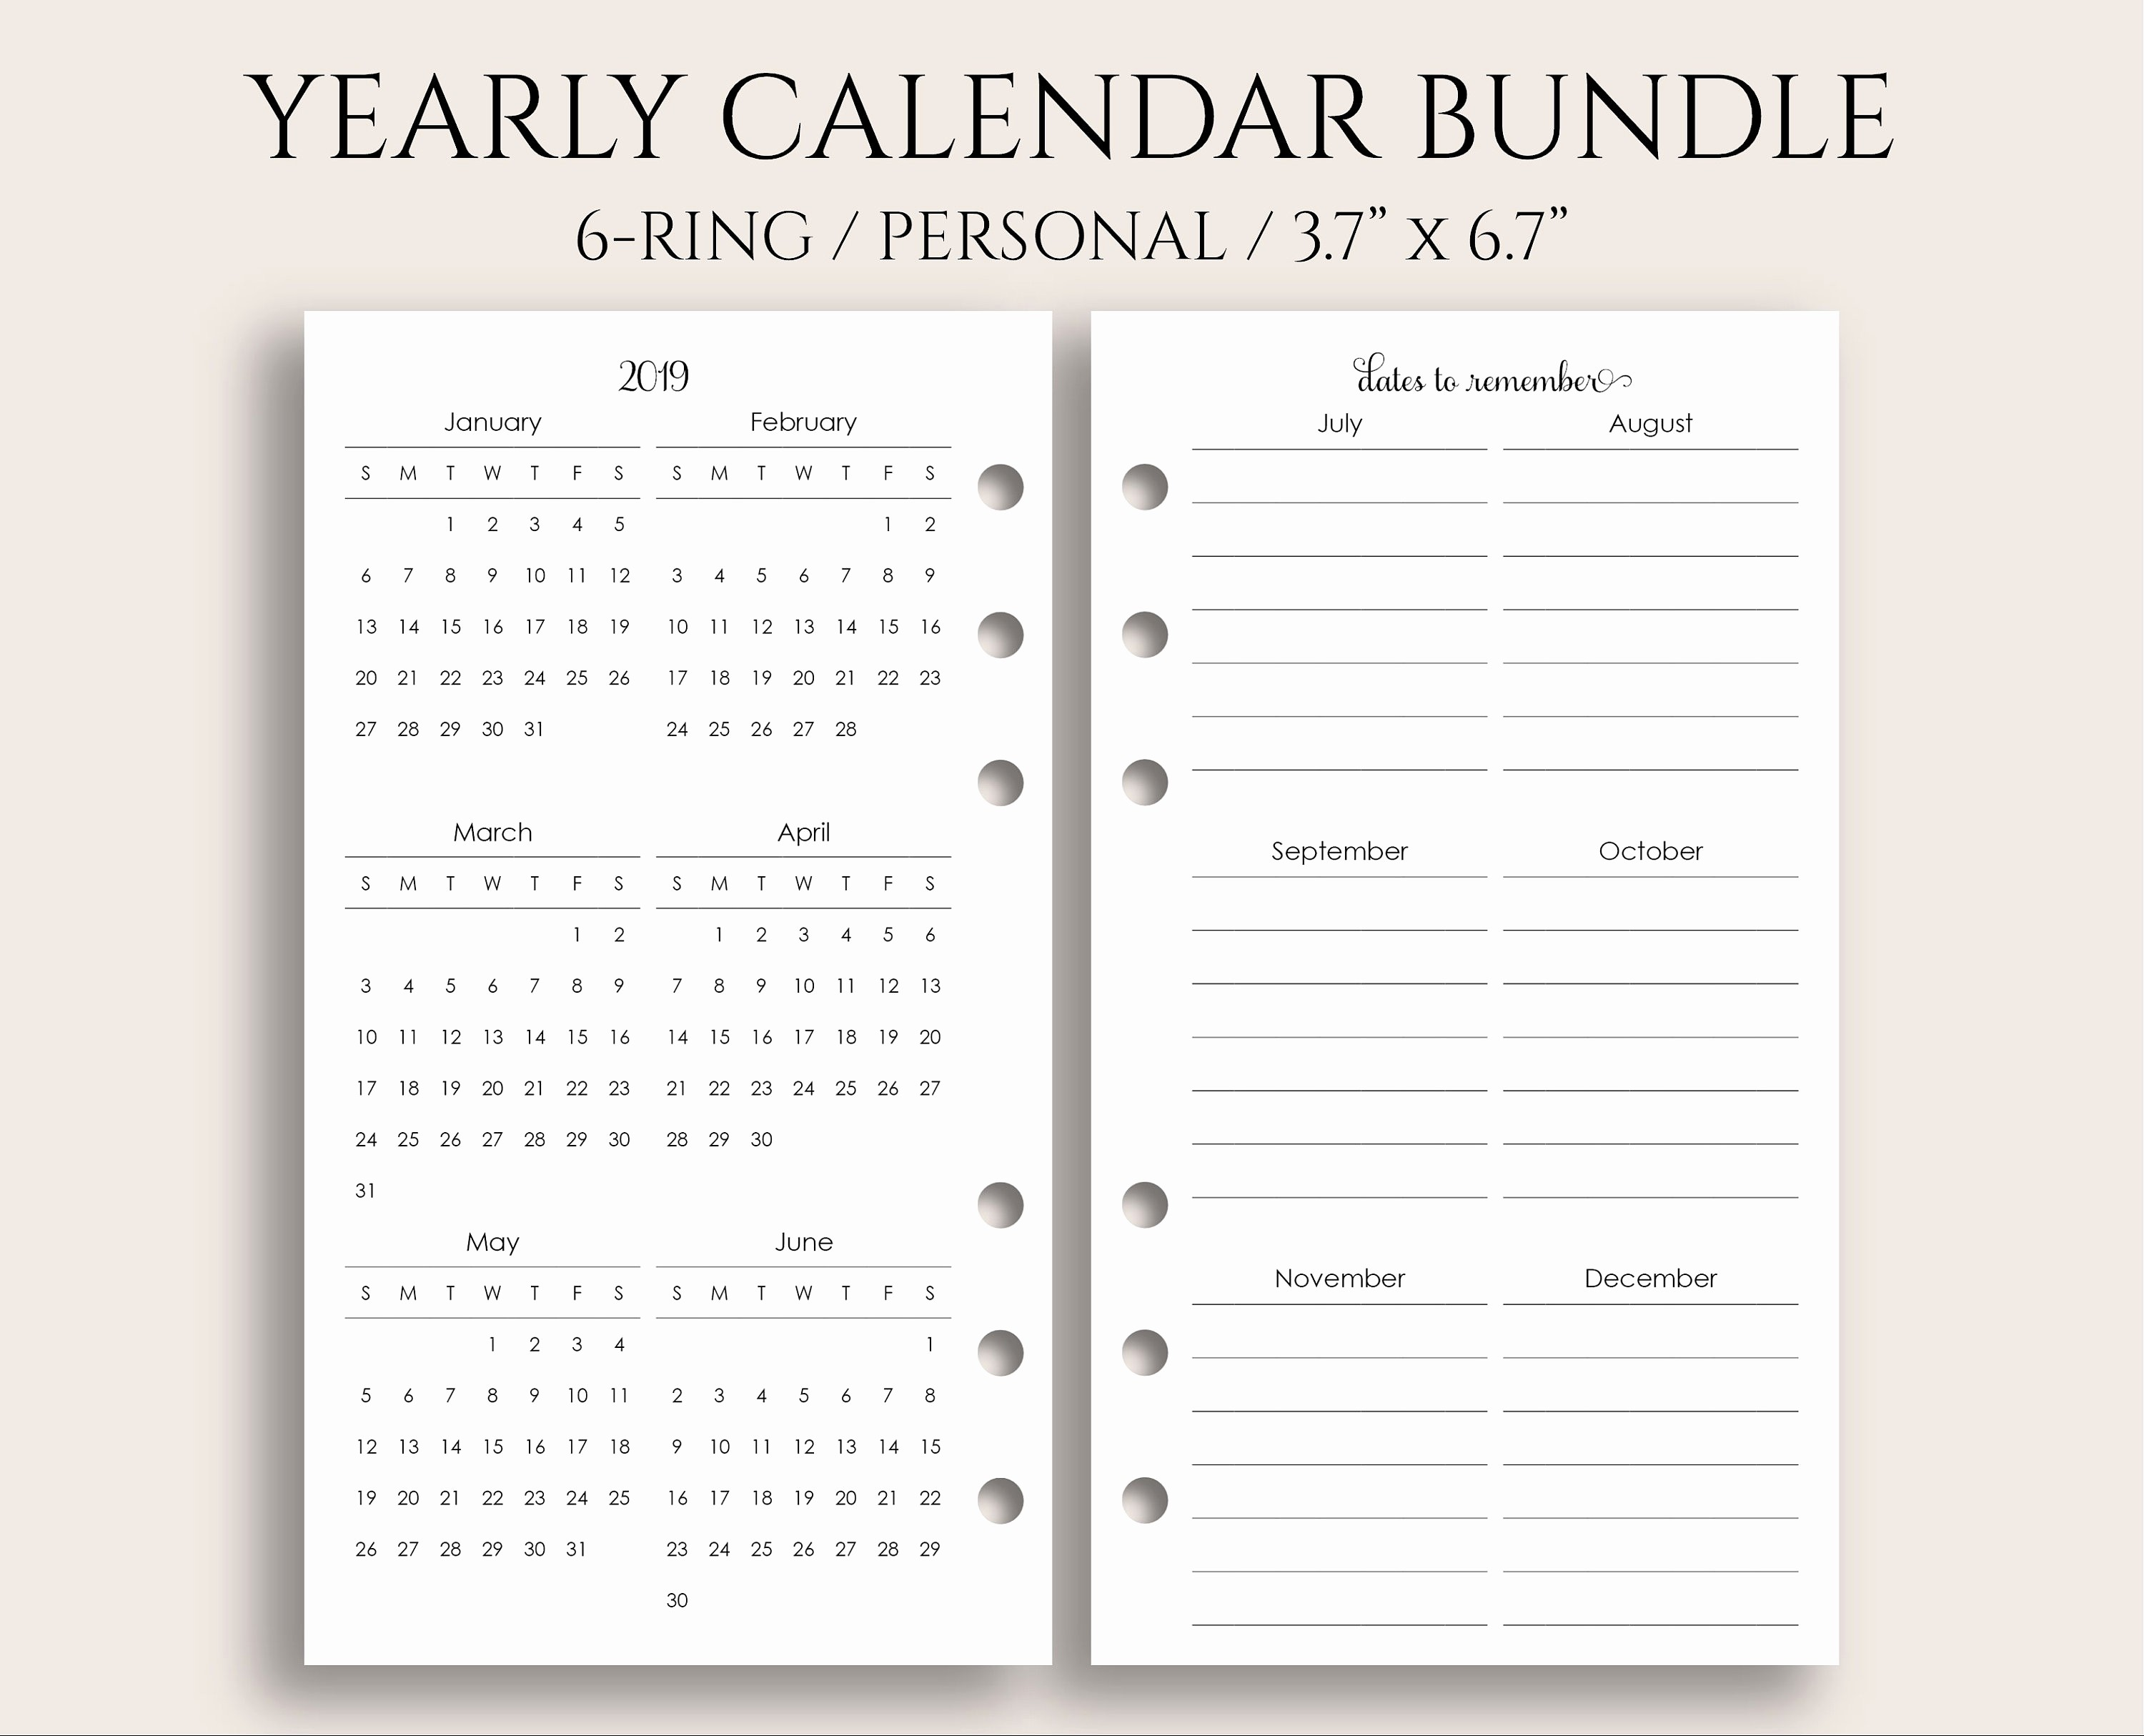 Annual Calendar at A Glance Awesome Yearly Calendar Bundle 2019 and 2020 Year at A Glance